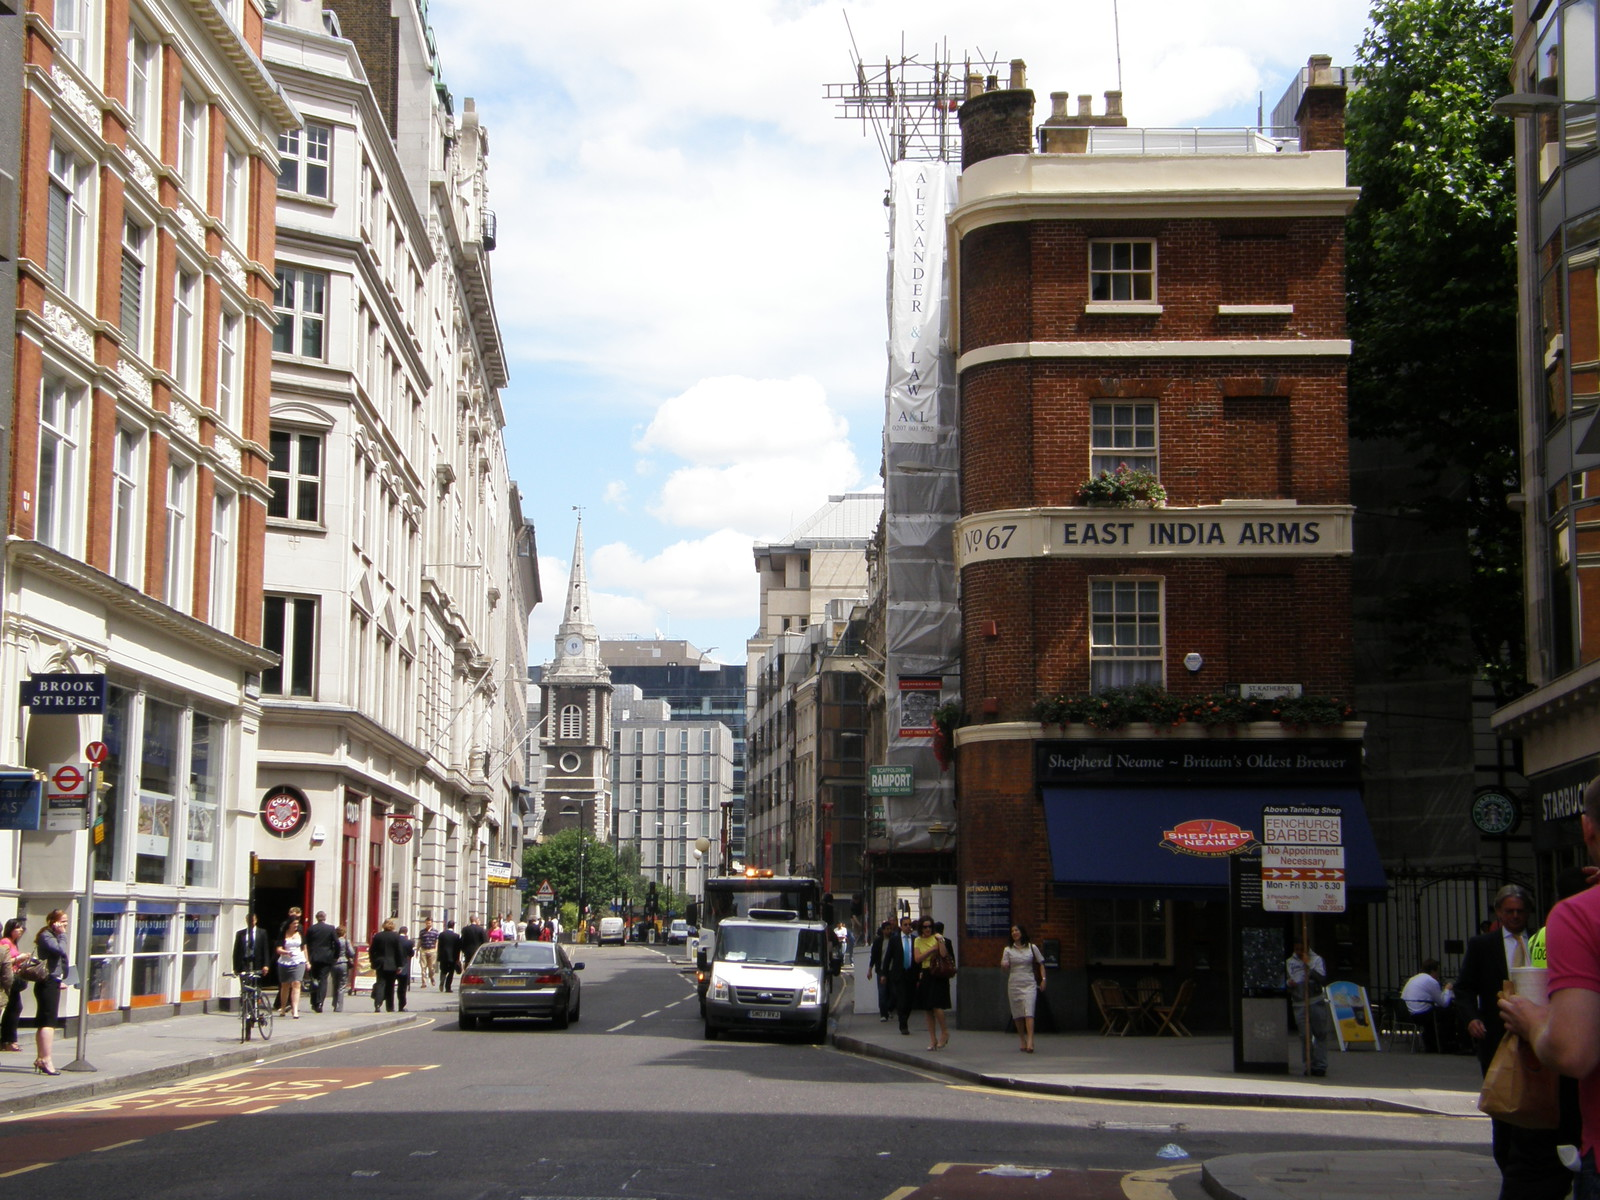 Image from Aldgate to Tower Hill and Gloucester Road to High Street Kensington